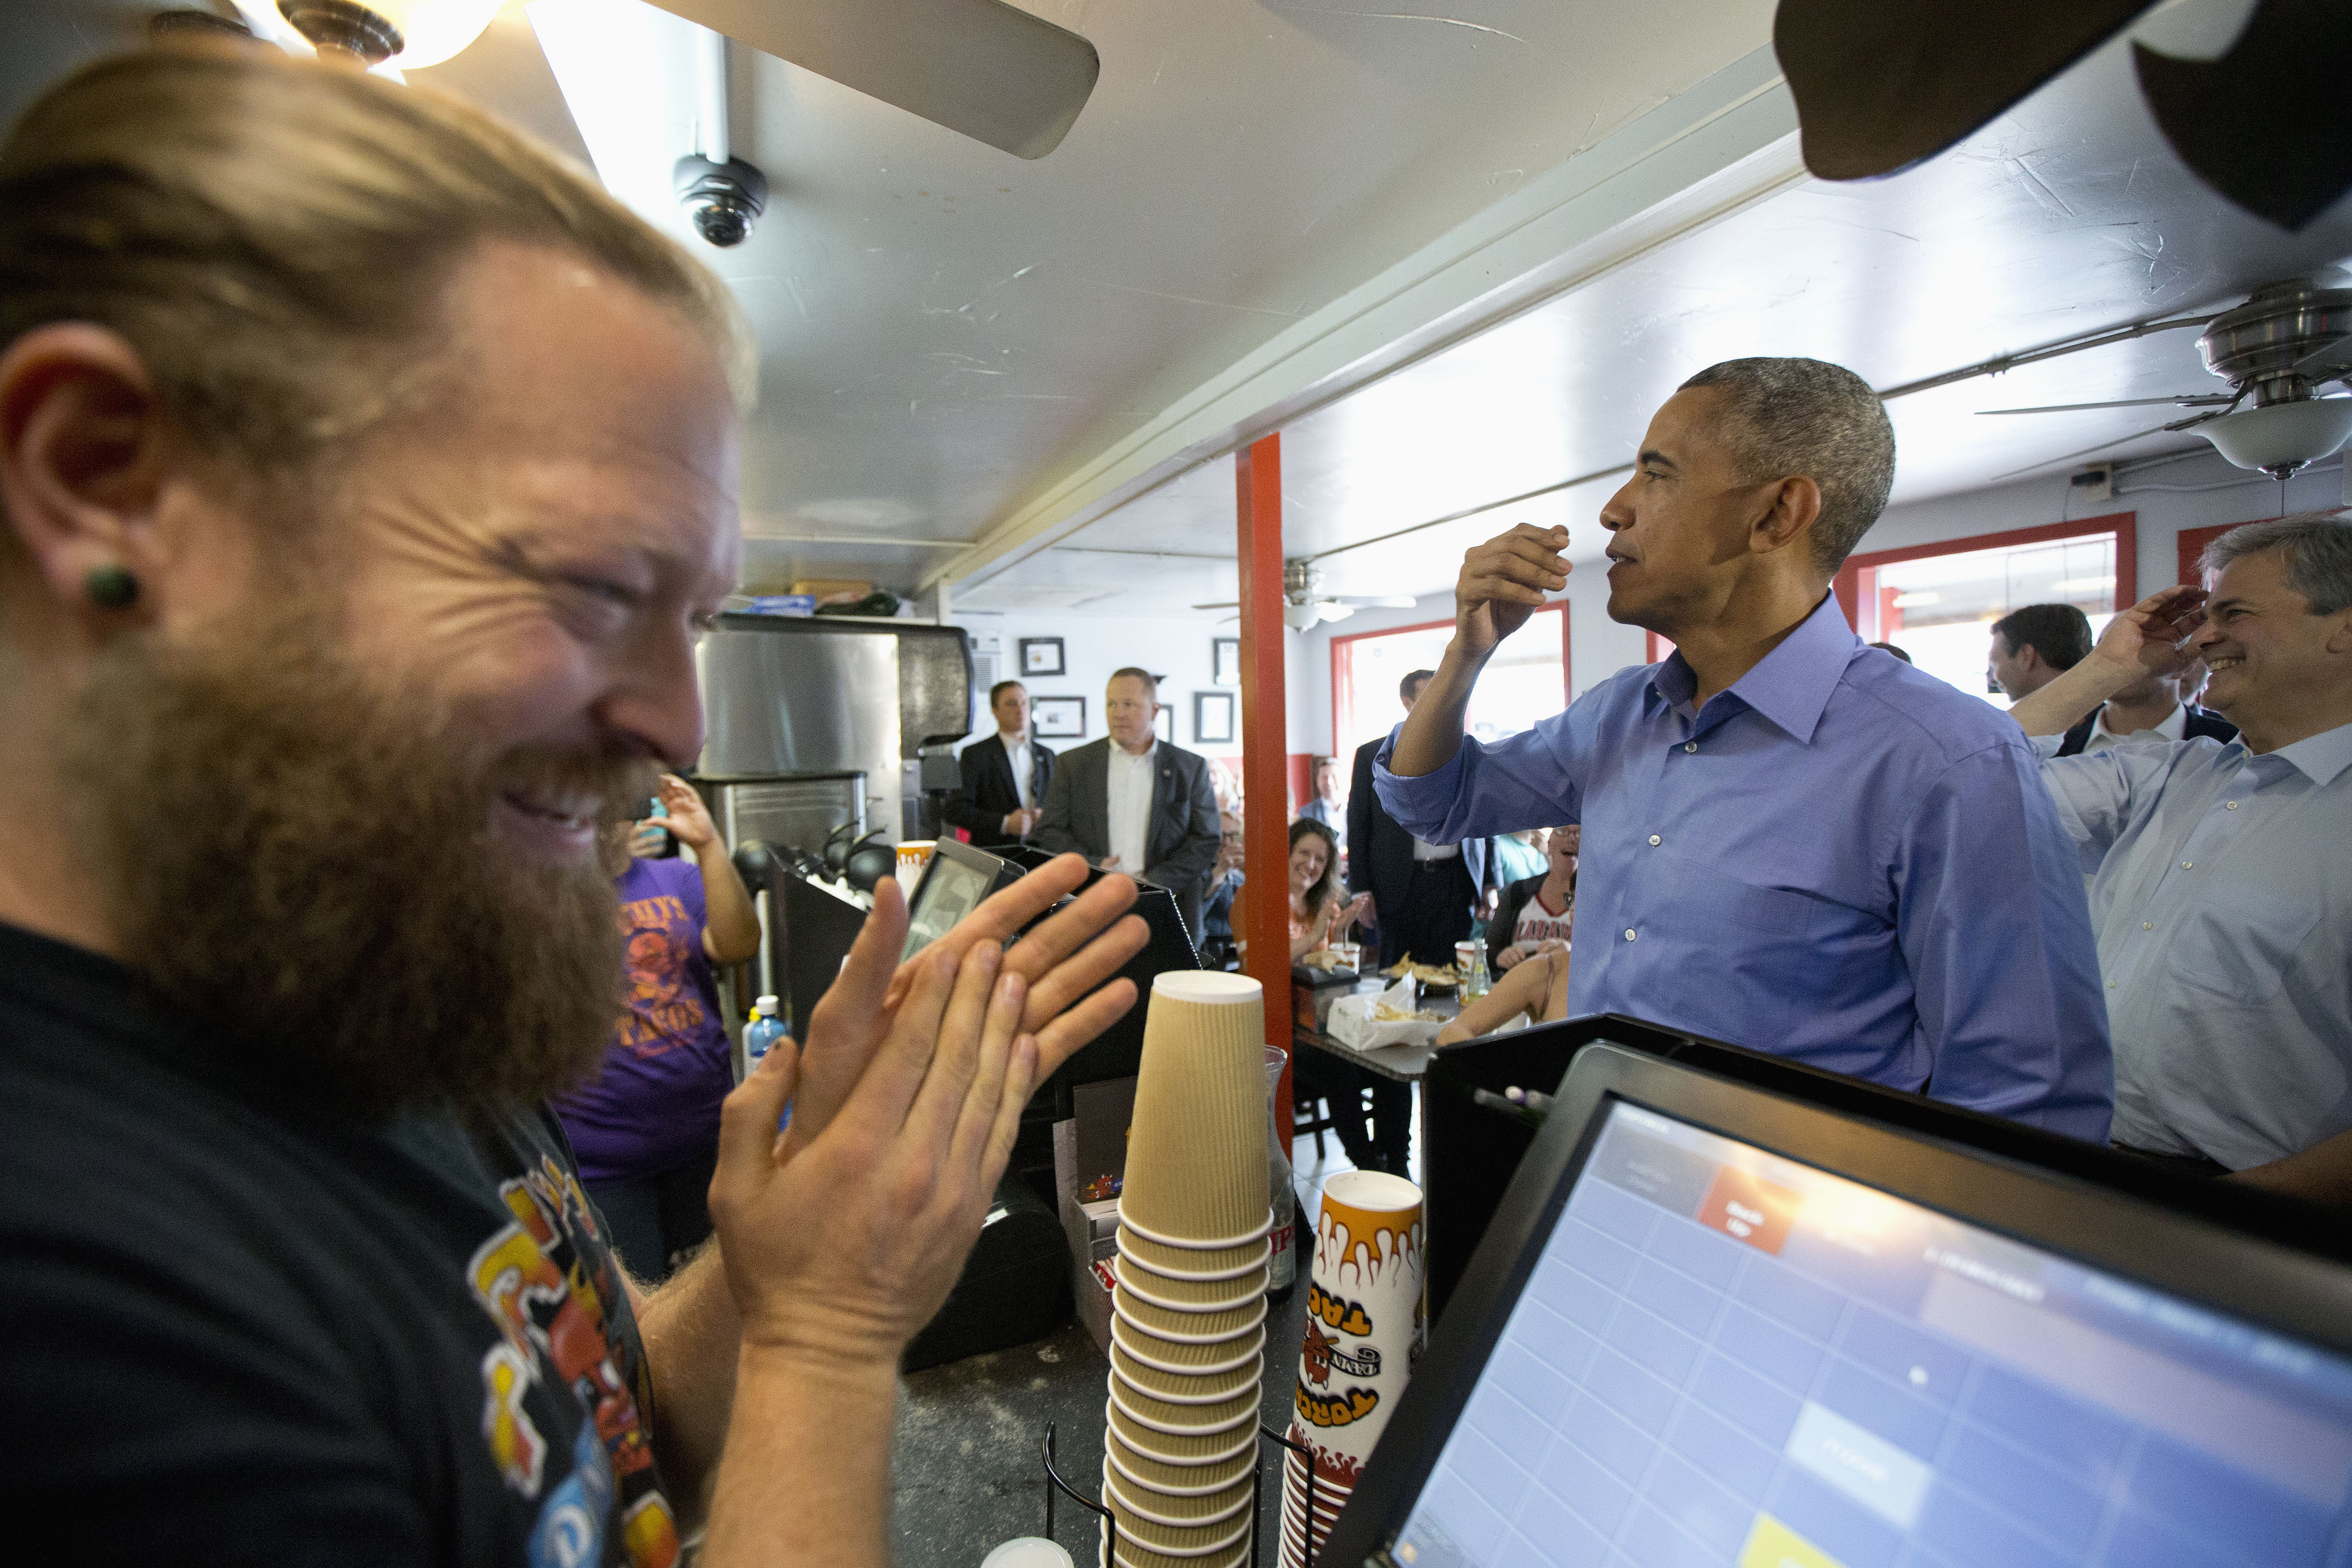 Obama placing his Torchy's order